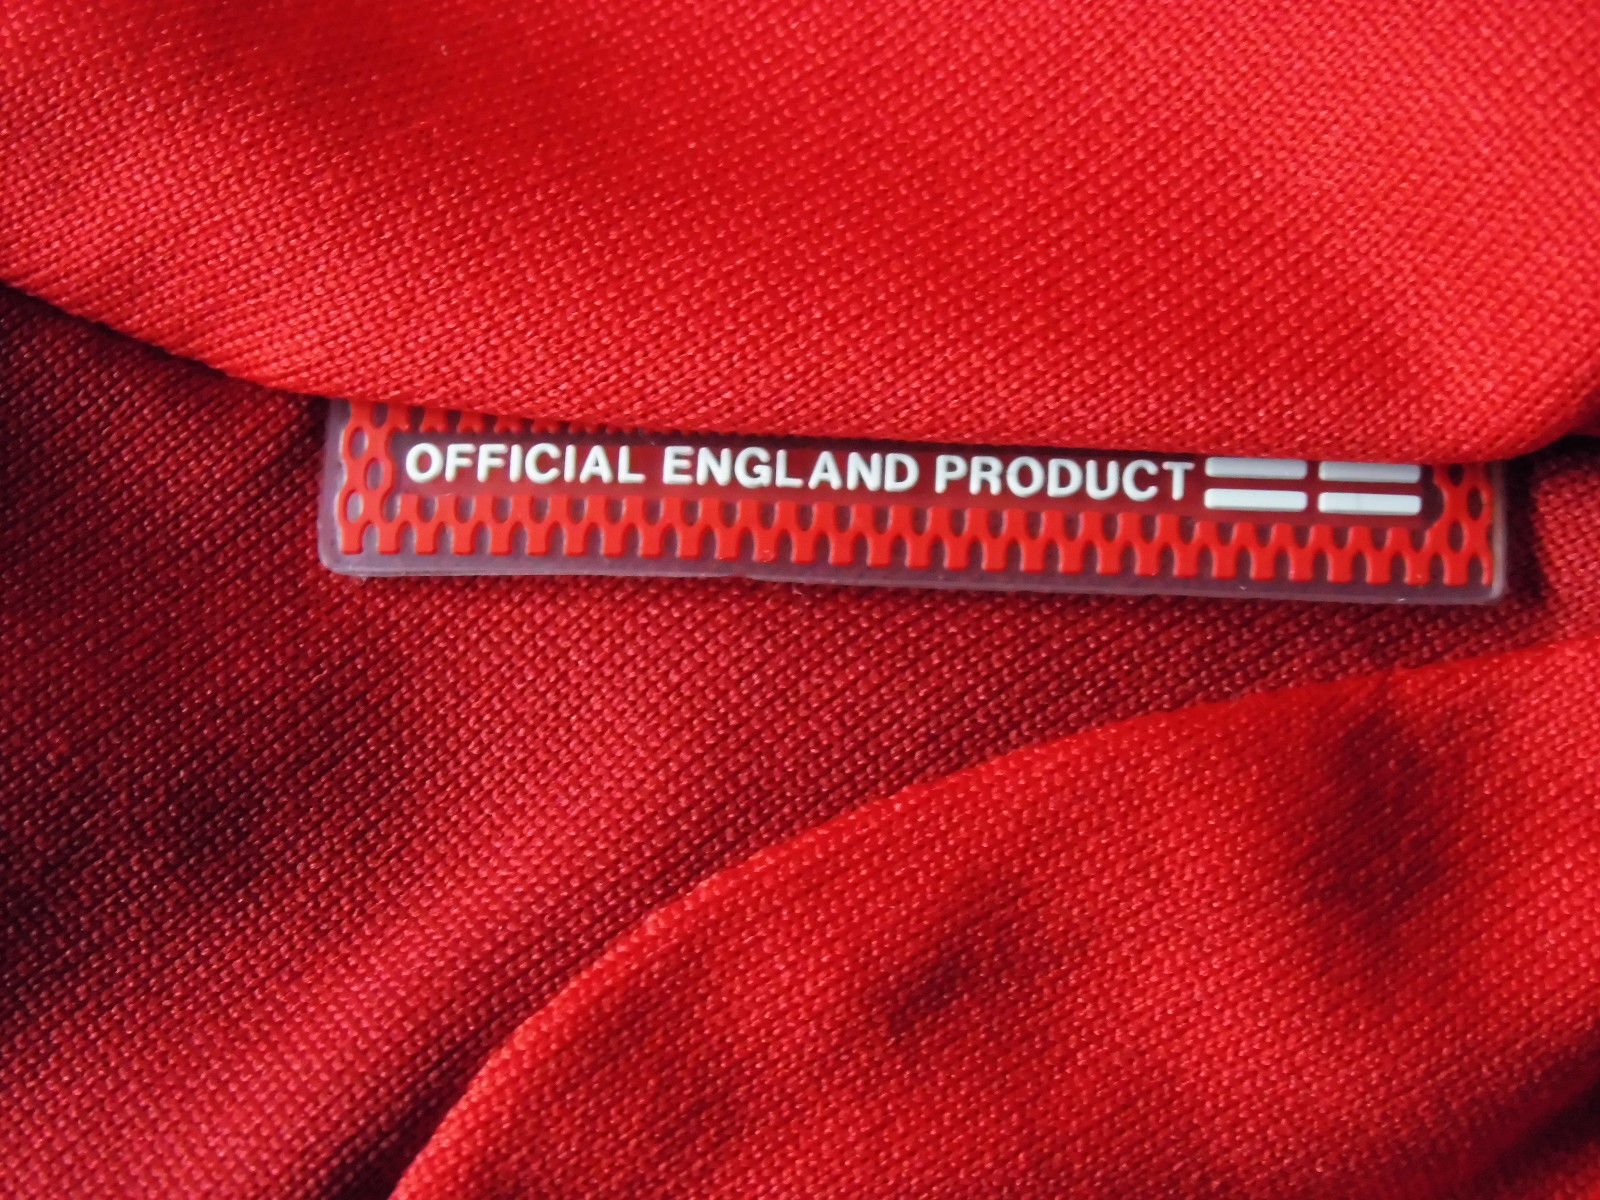 UMBRO Nationalmannschaft England Three Lions Trikot WM WM WM 2006 WM 2018, Gr. M rot 2dc0fa